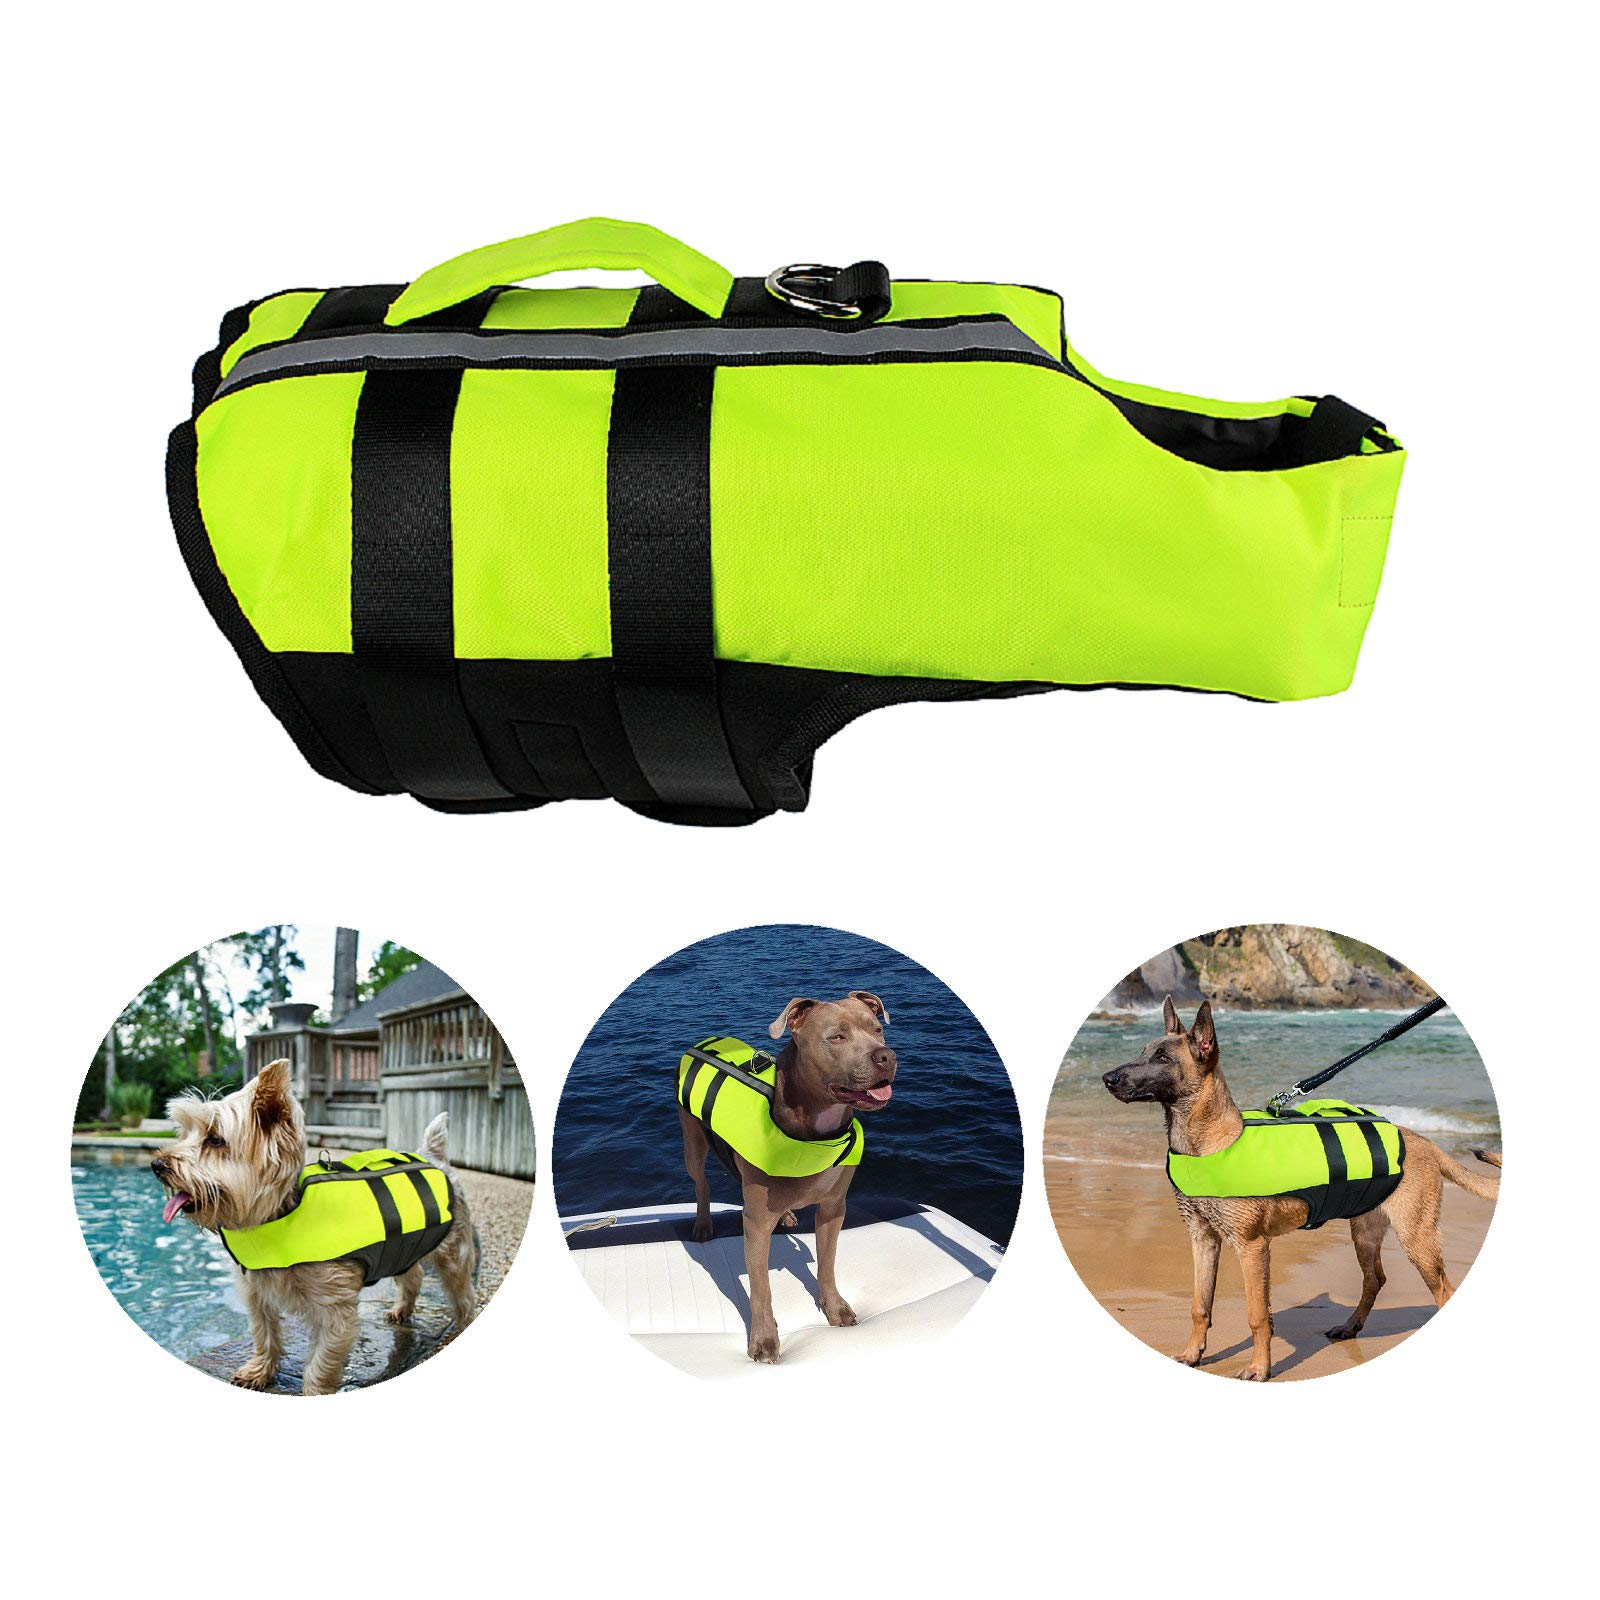 Petvins Dog Life Jacket Inflatable Pet Life Preserver Adjustable Air Sac Swiming Coat Safety Vest Fluorescent Green Large by Petvins